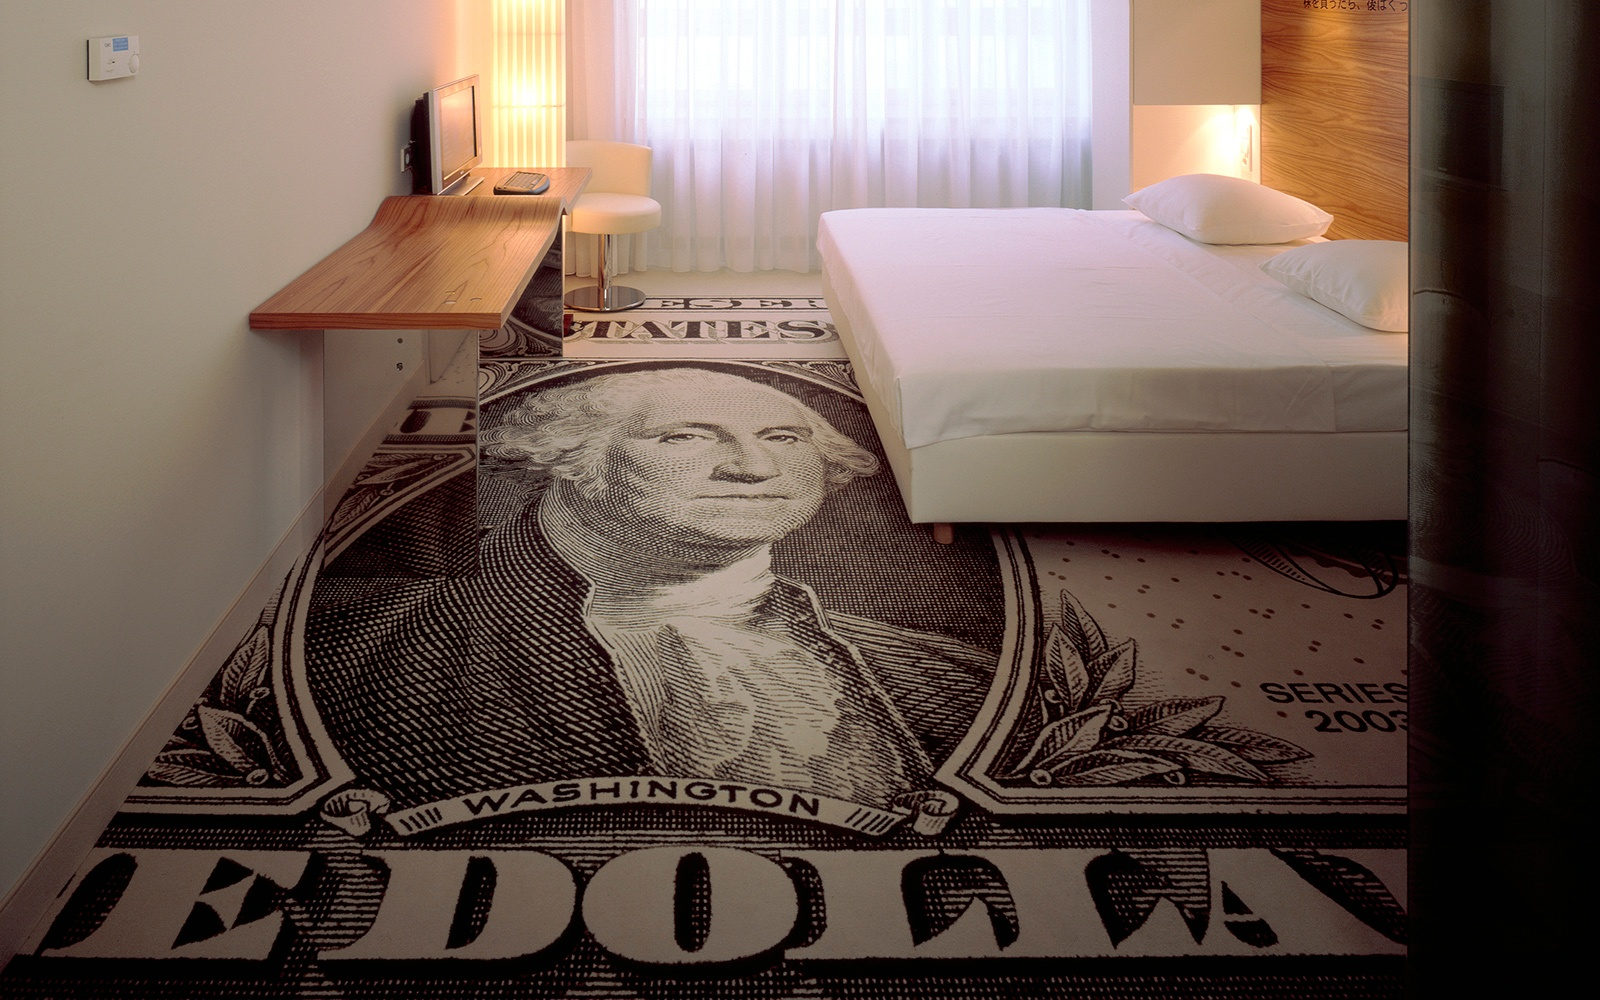 Hotel Wall Street in Germany - ege carpets